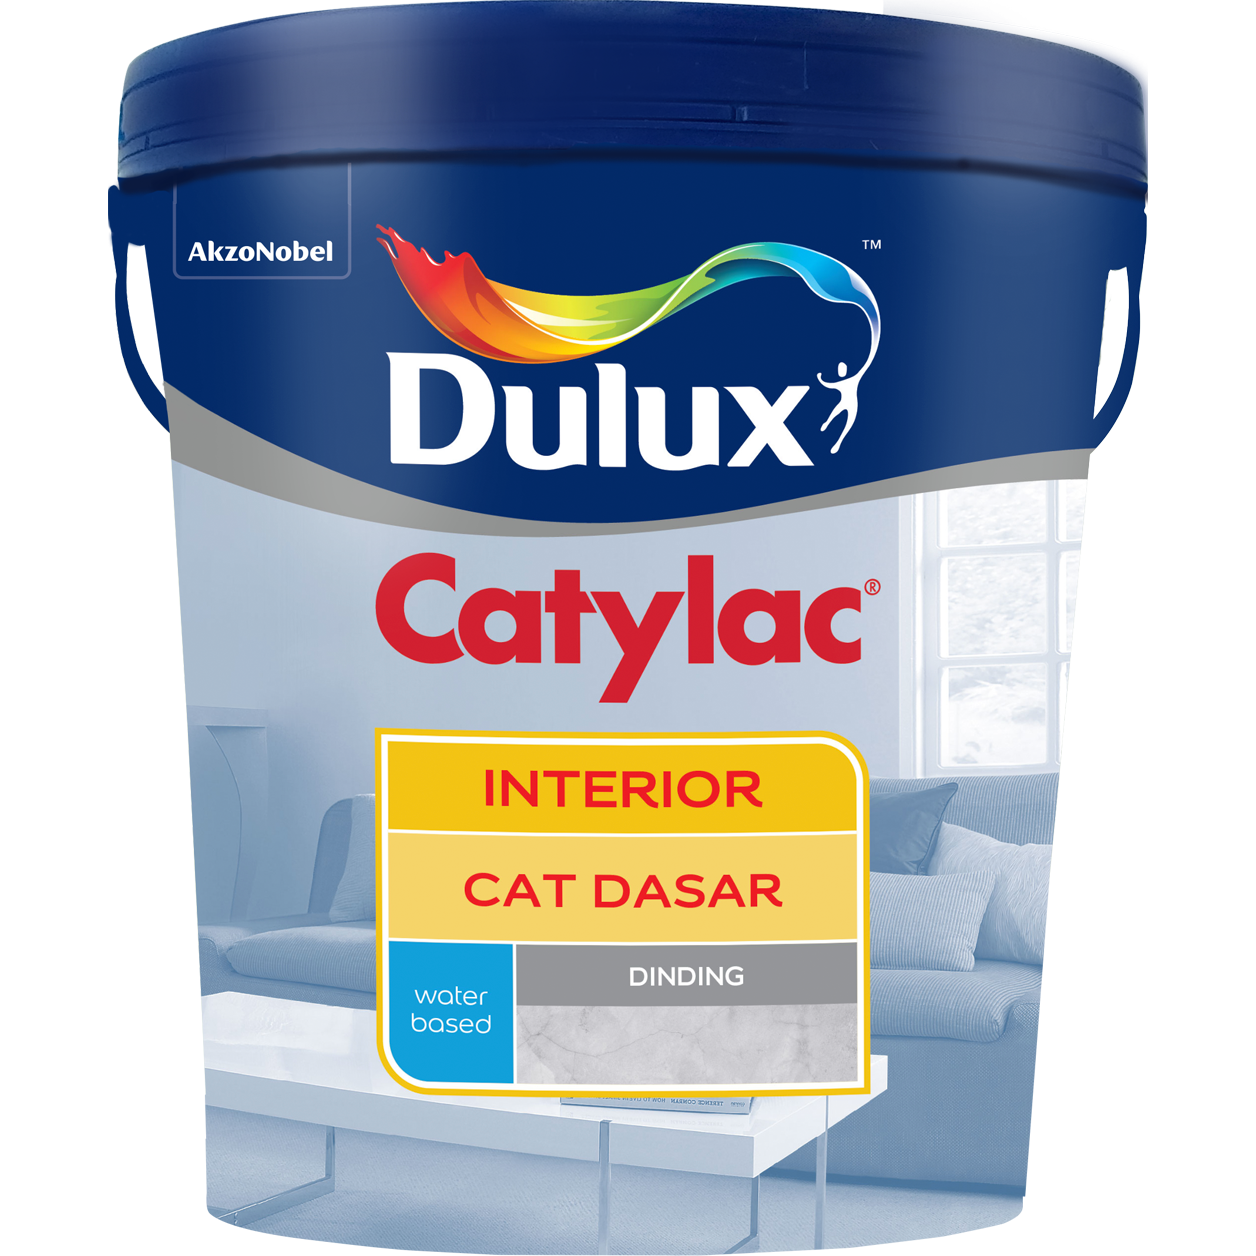 Dulux Catylac Cat Dasar Interior